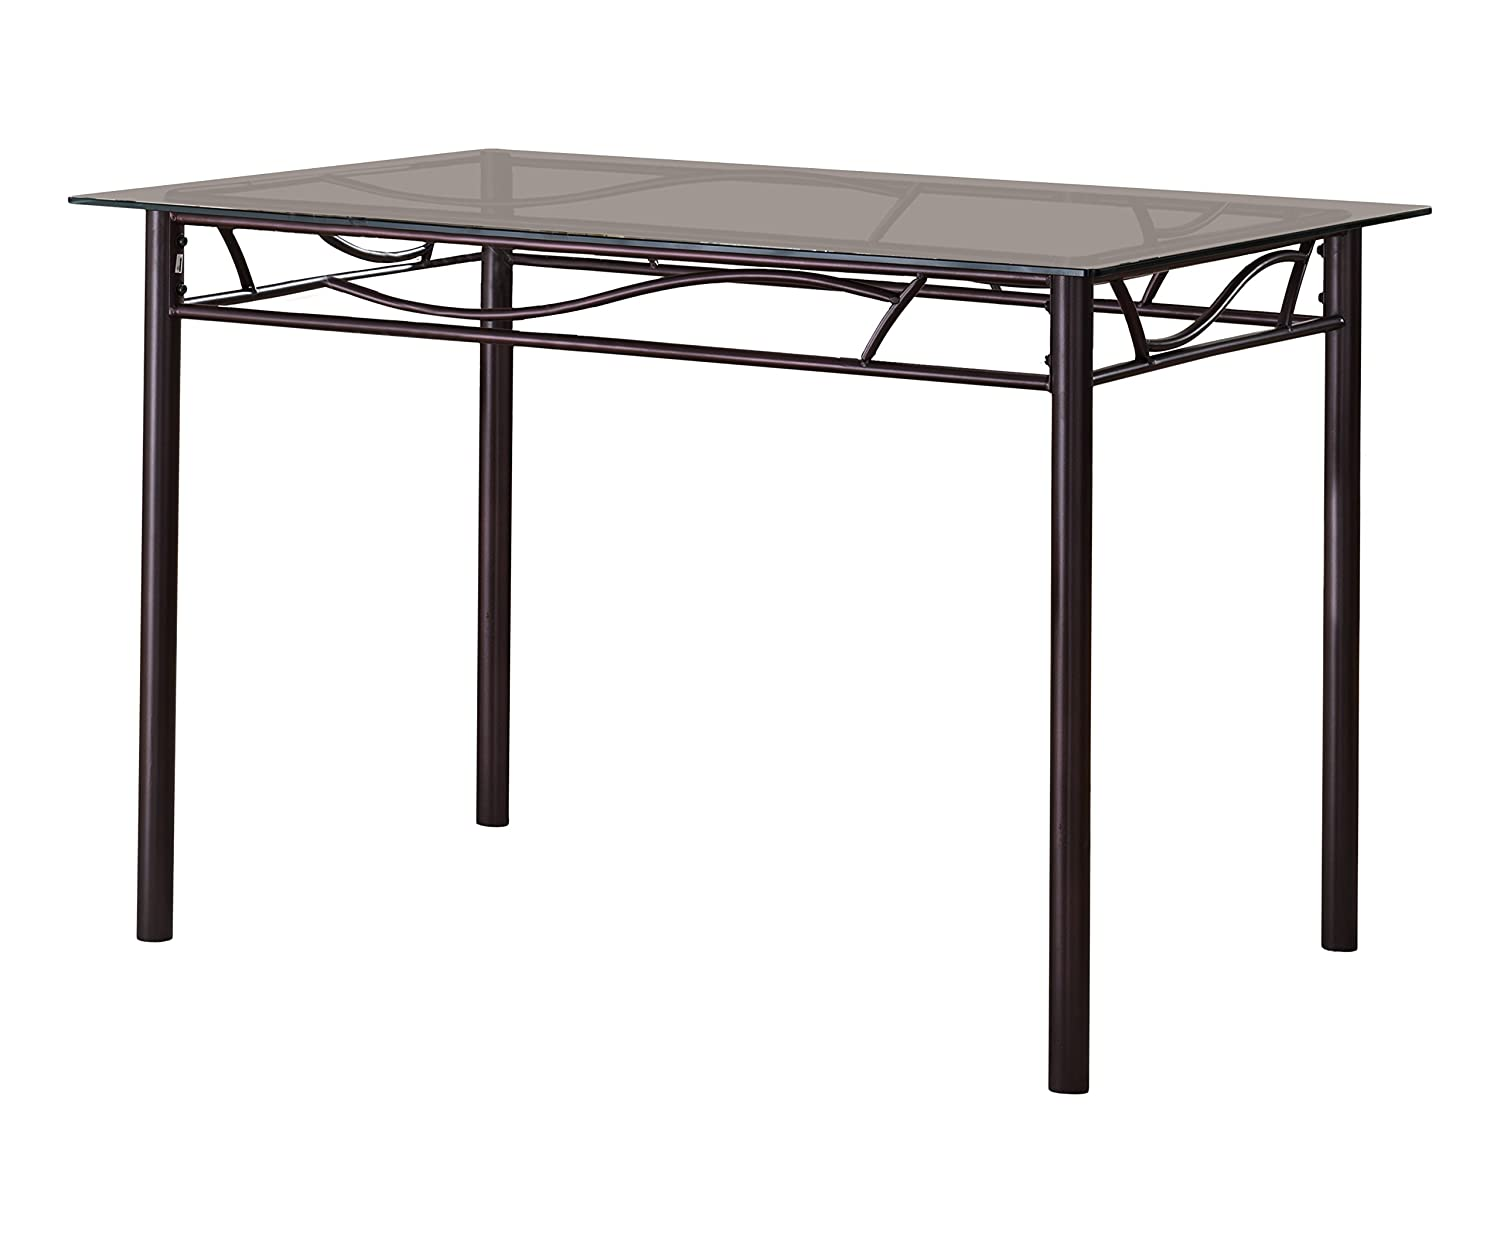 Amazon com kings brand furniture bronze metal tempered glass top rectangular kitchen dinette table tables